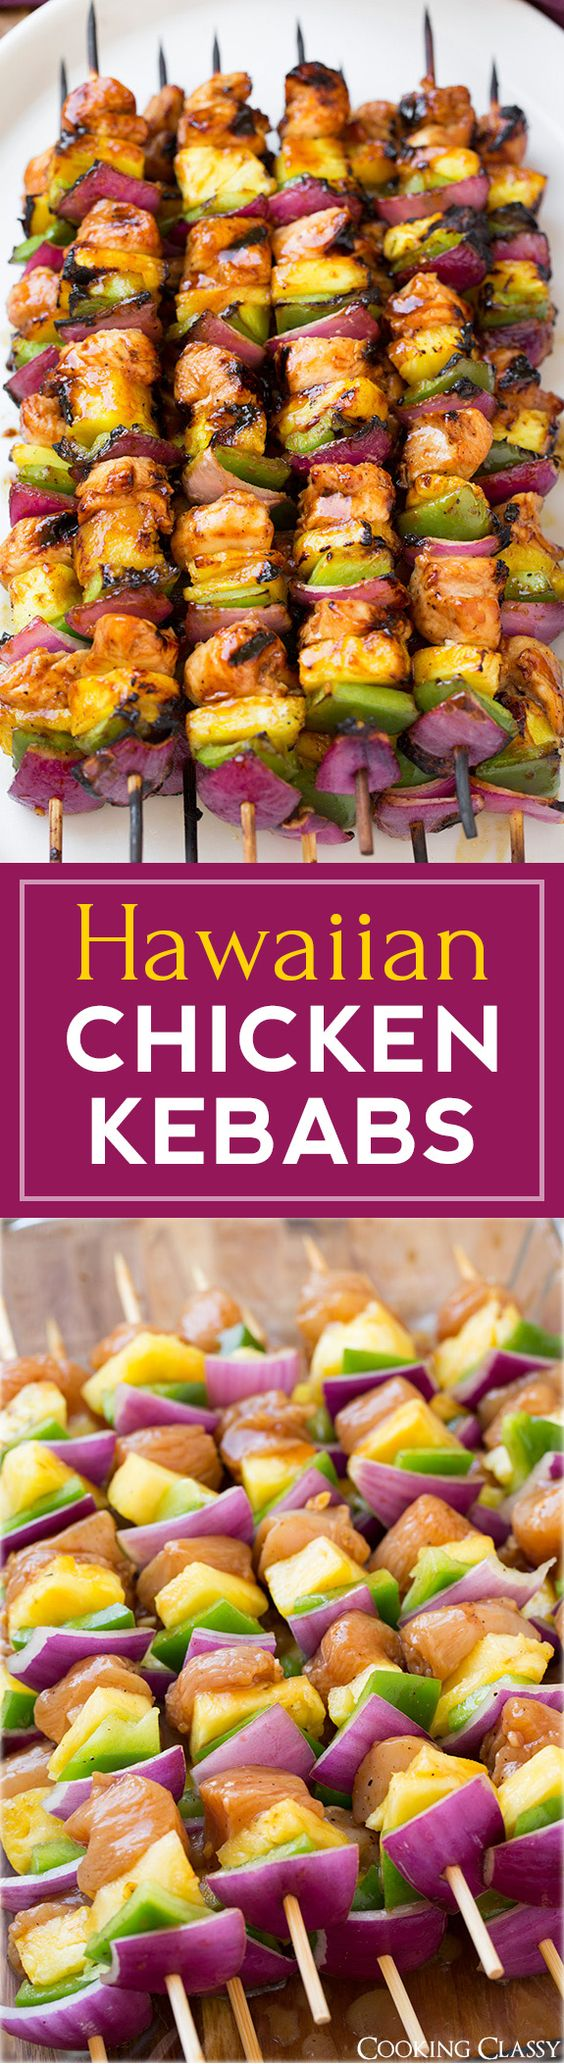 Hawaiian chicken, Chicken kebab and Kebabs on Pinterest